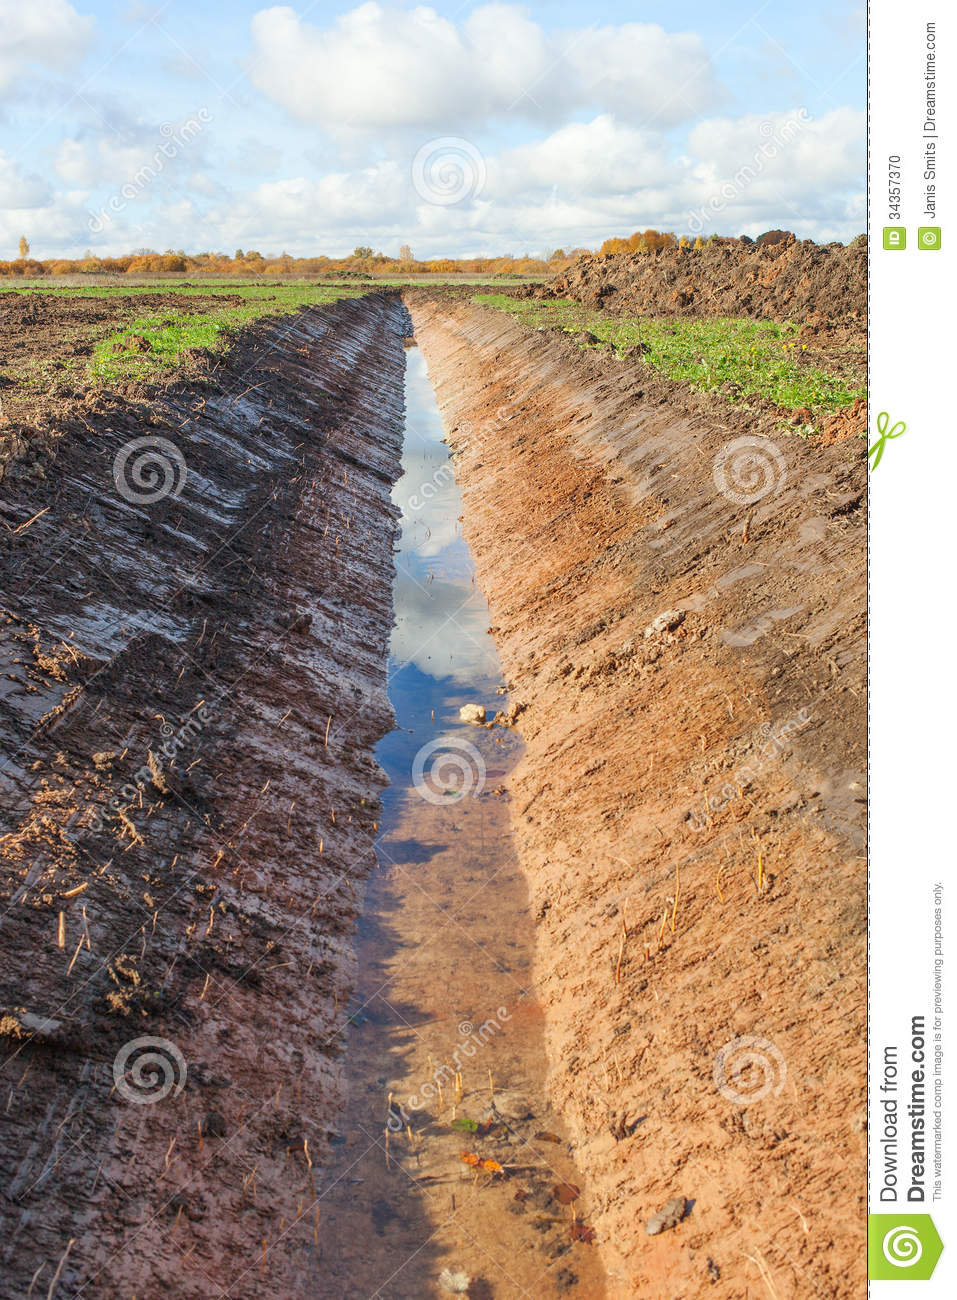 New Ditch. Stock Photo.